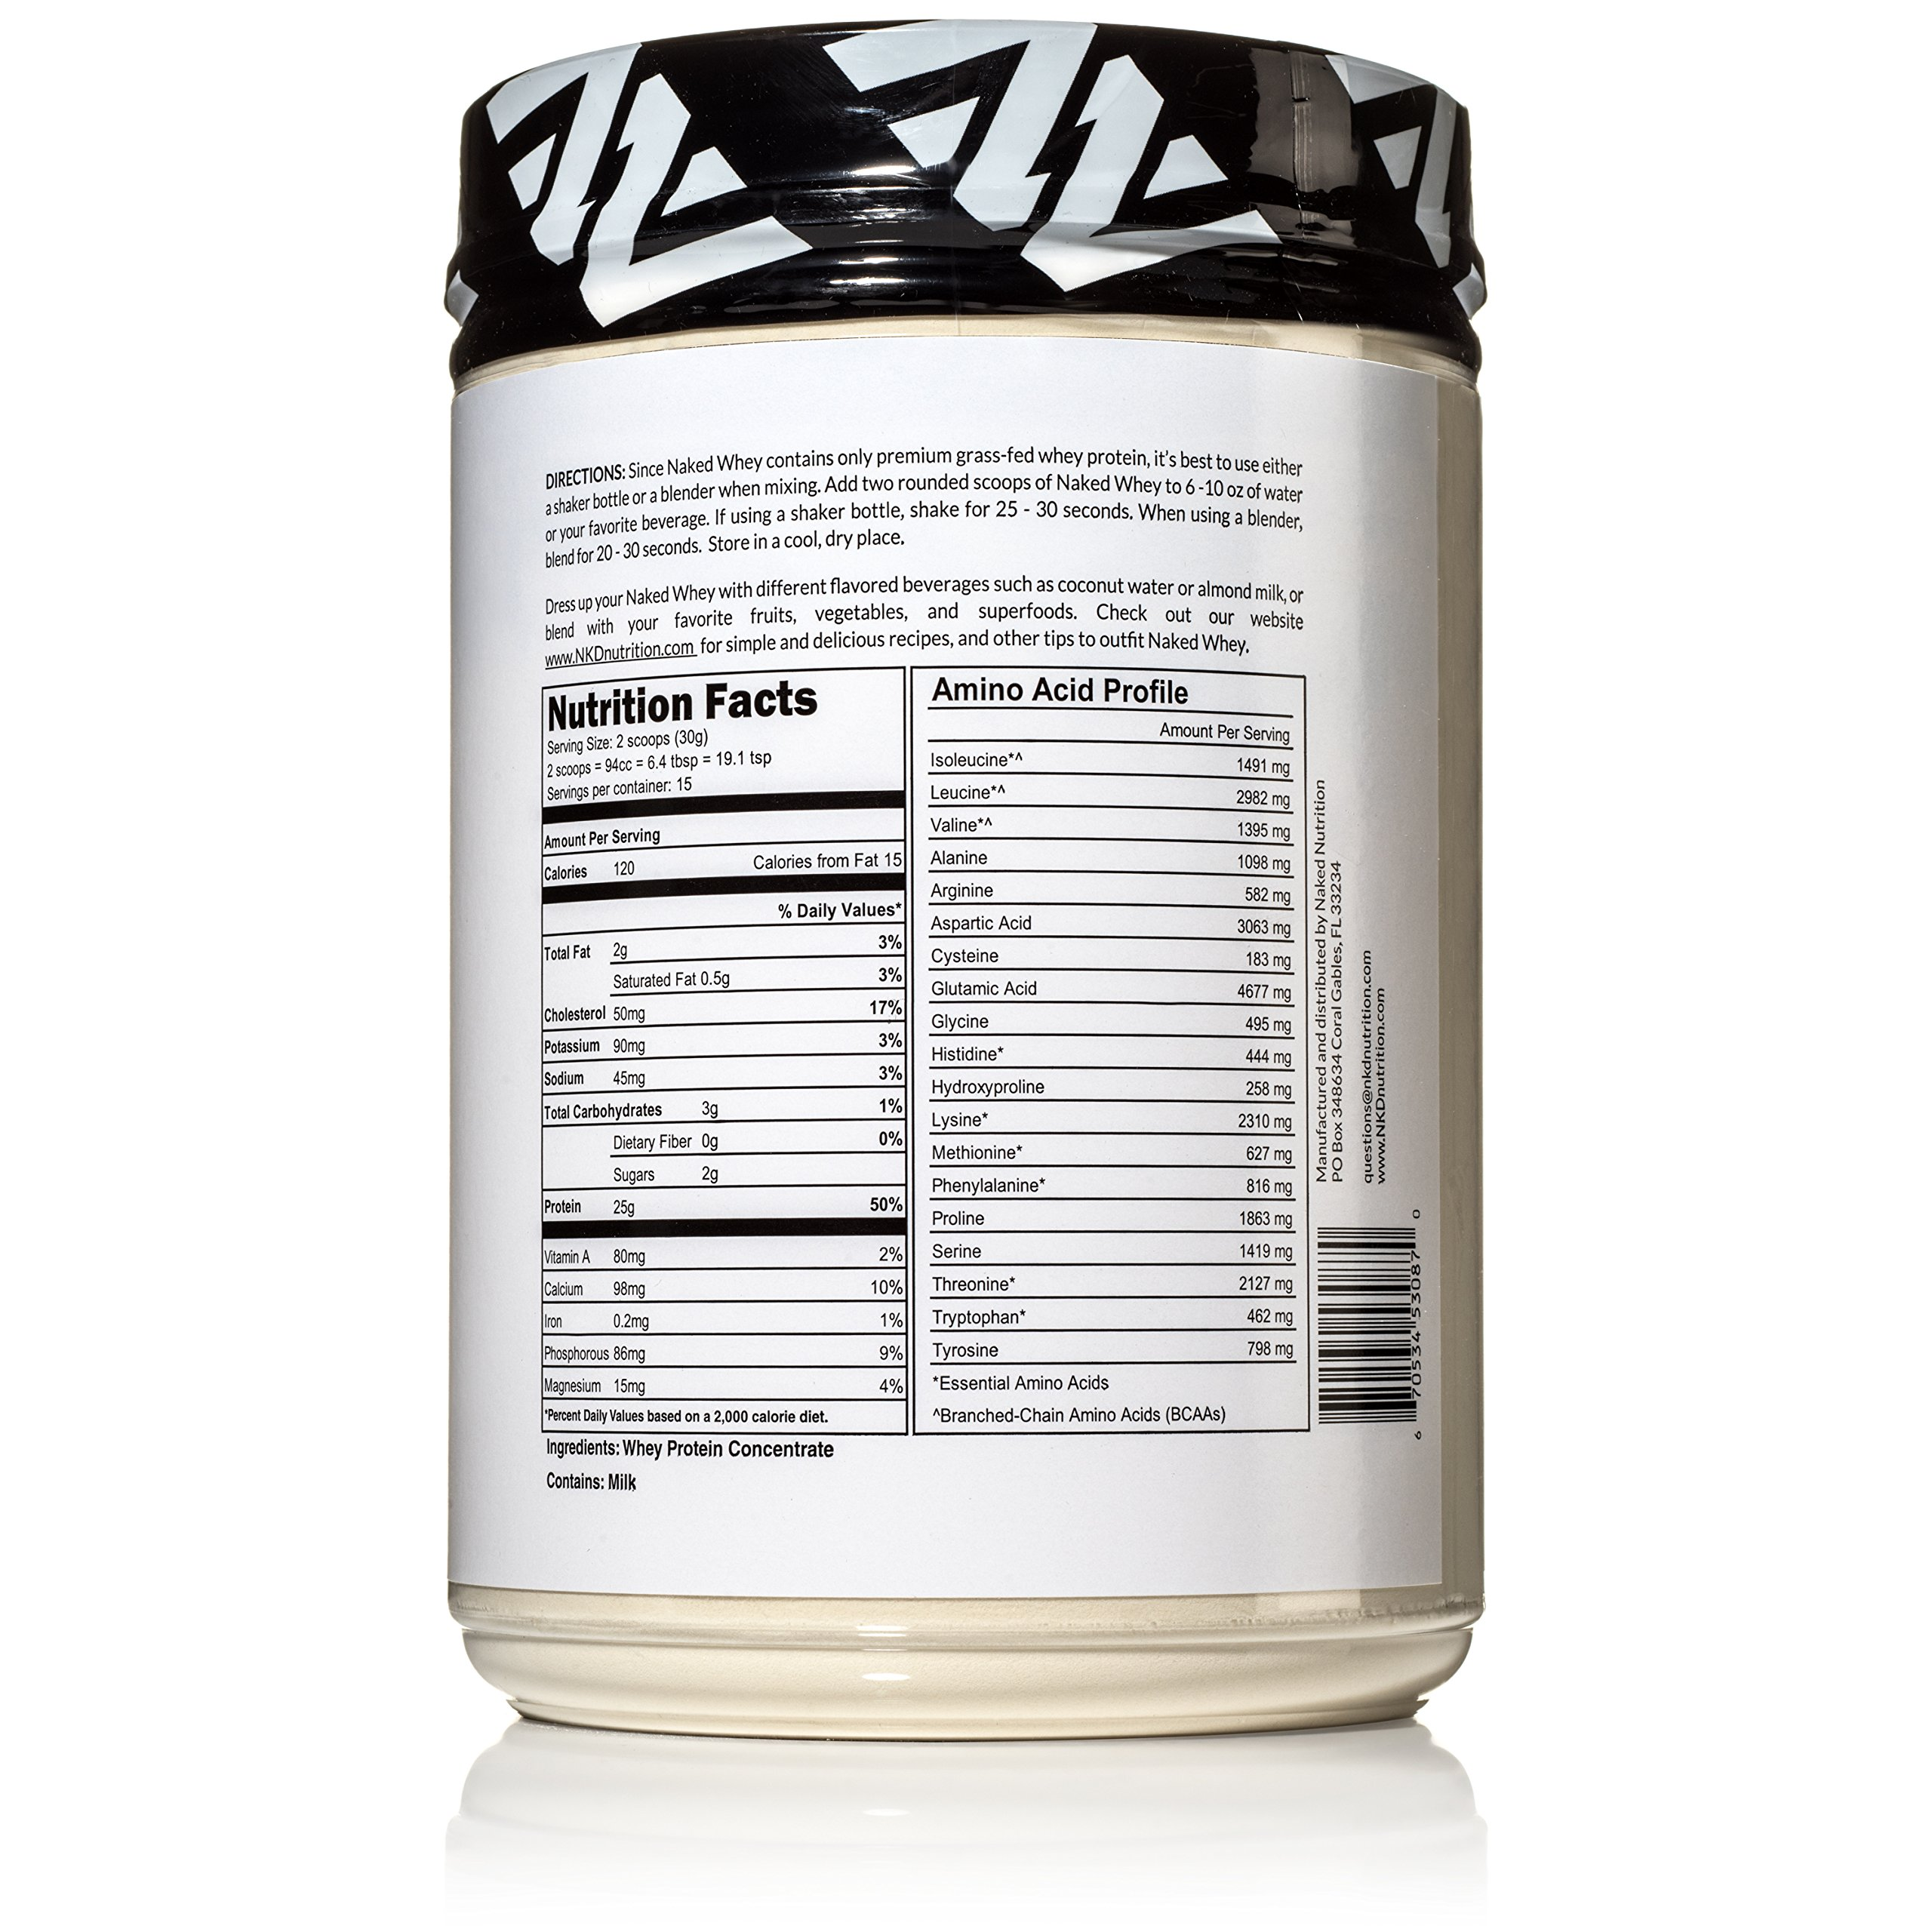 Naked WHEY 1LB 100% Grass Fed Unflavored Whey Protein Powder - US Farms, Only 1 Ingredient, Undenatured - No GMO, Soy or Gluten - No Preservatives - Promote Muscle Growth and Recovery - 15 Servings by NAKED nutrition (Image #5)